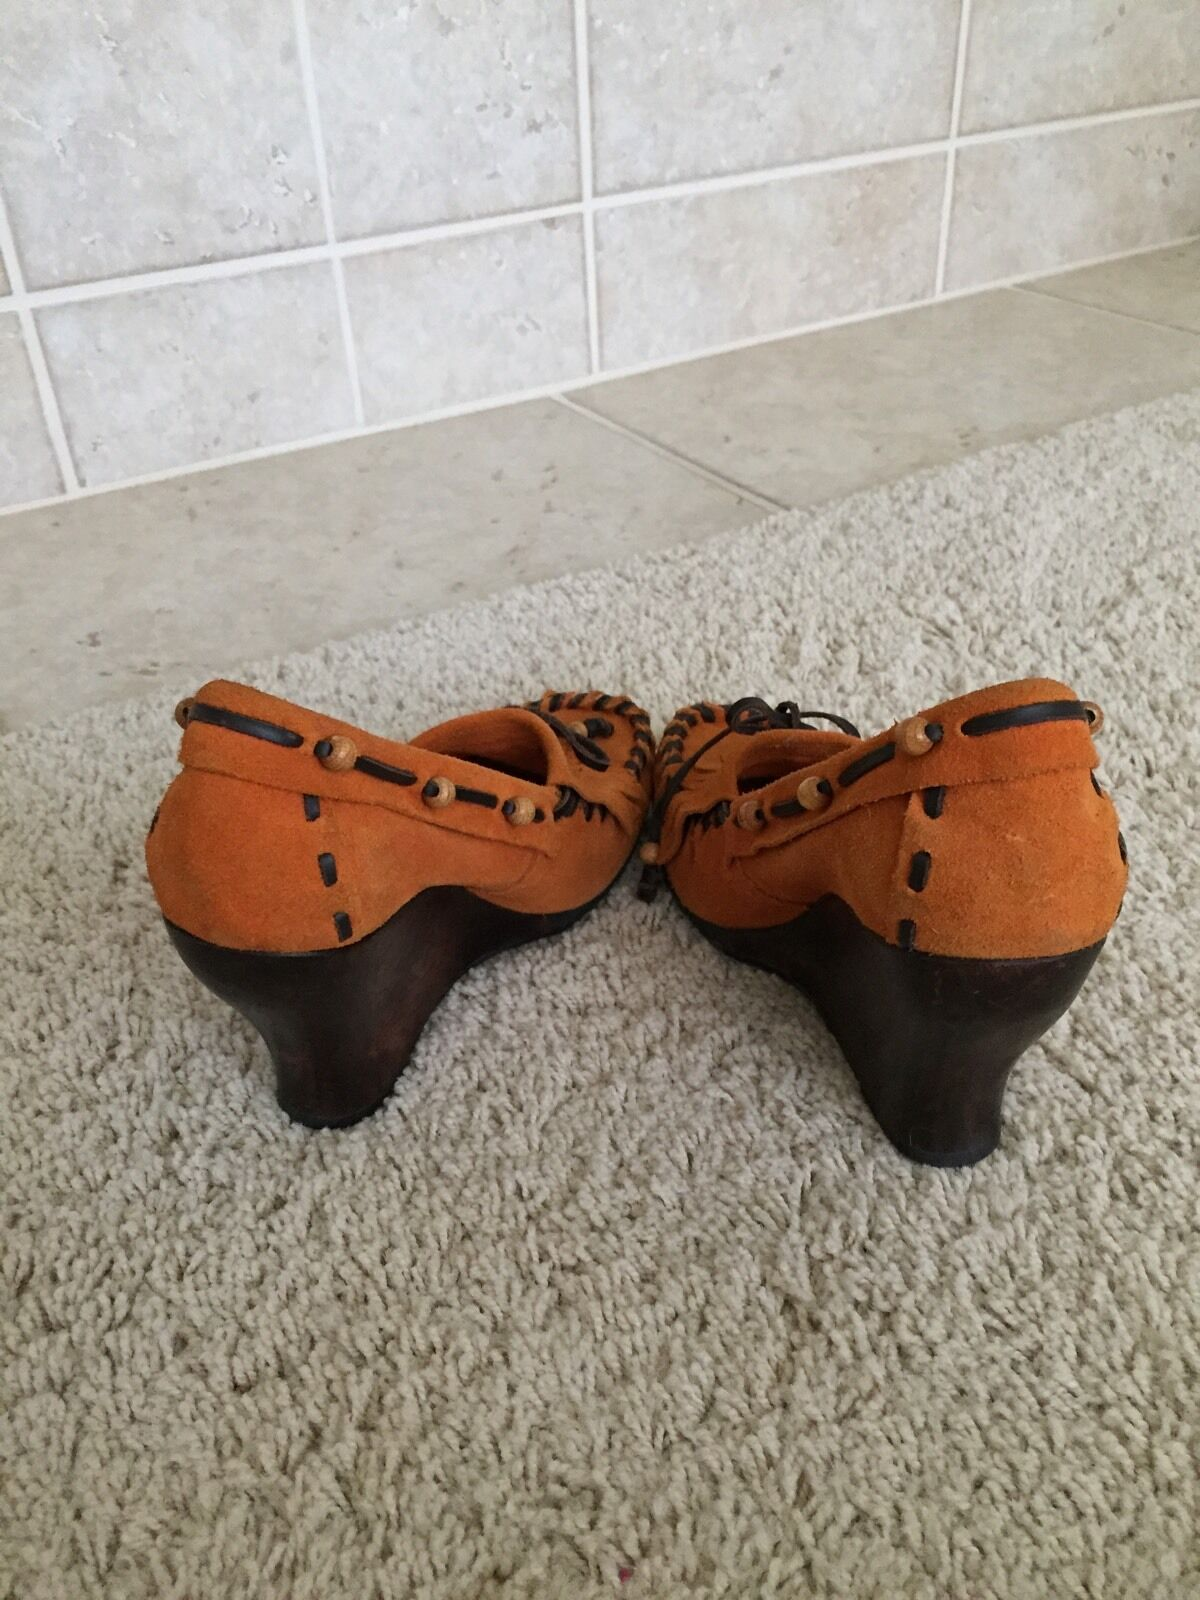 SAM EDELMAN ANGELINA WEDGE HEELS HEELS HEELS MOCCASIN Schuhe TASSEL BEADED BOW Damenschuhe 8.5 TAN 08f019